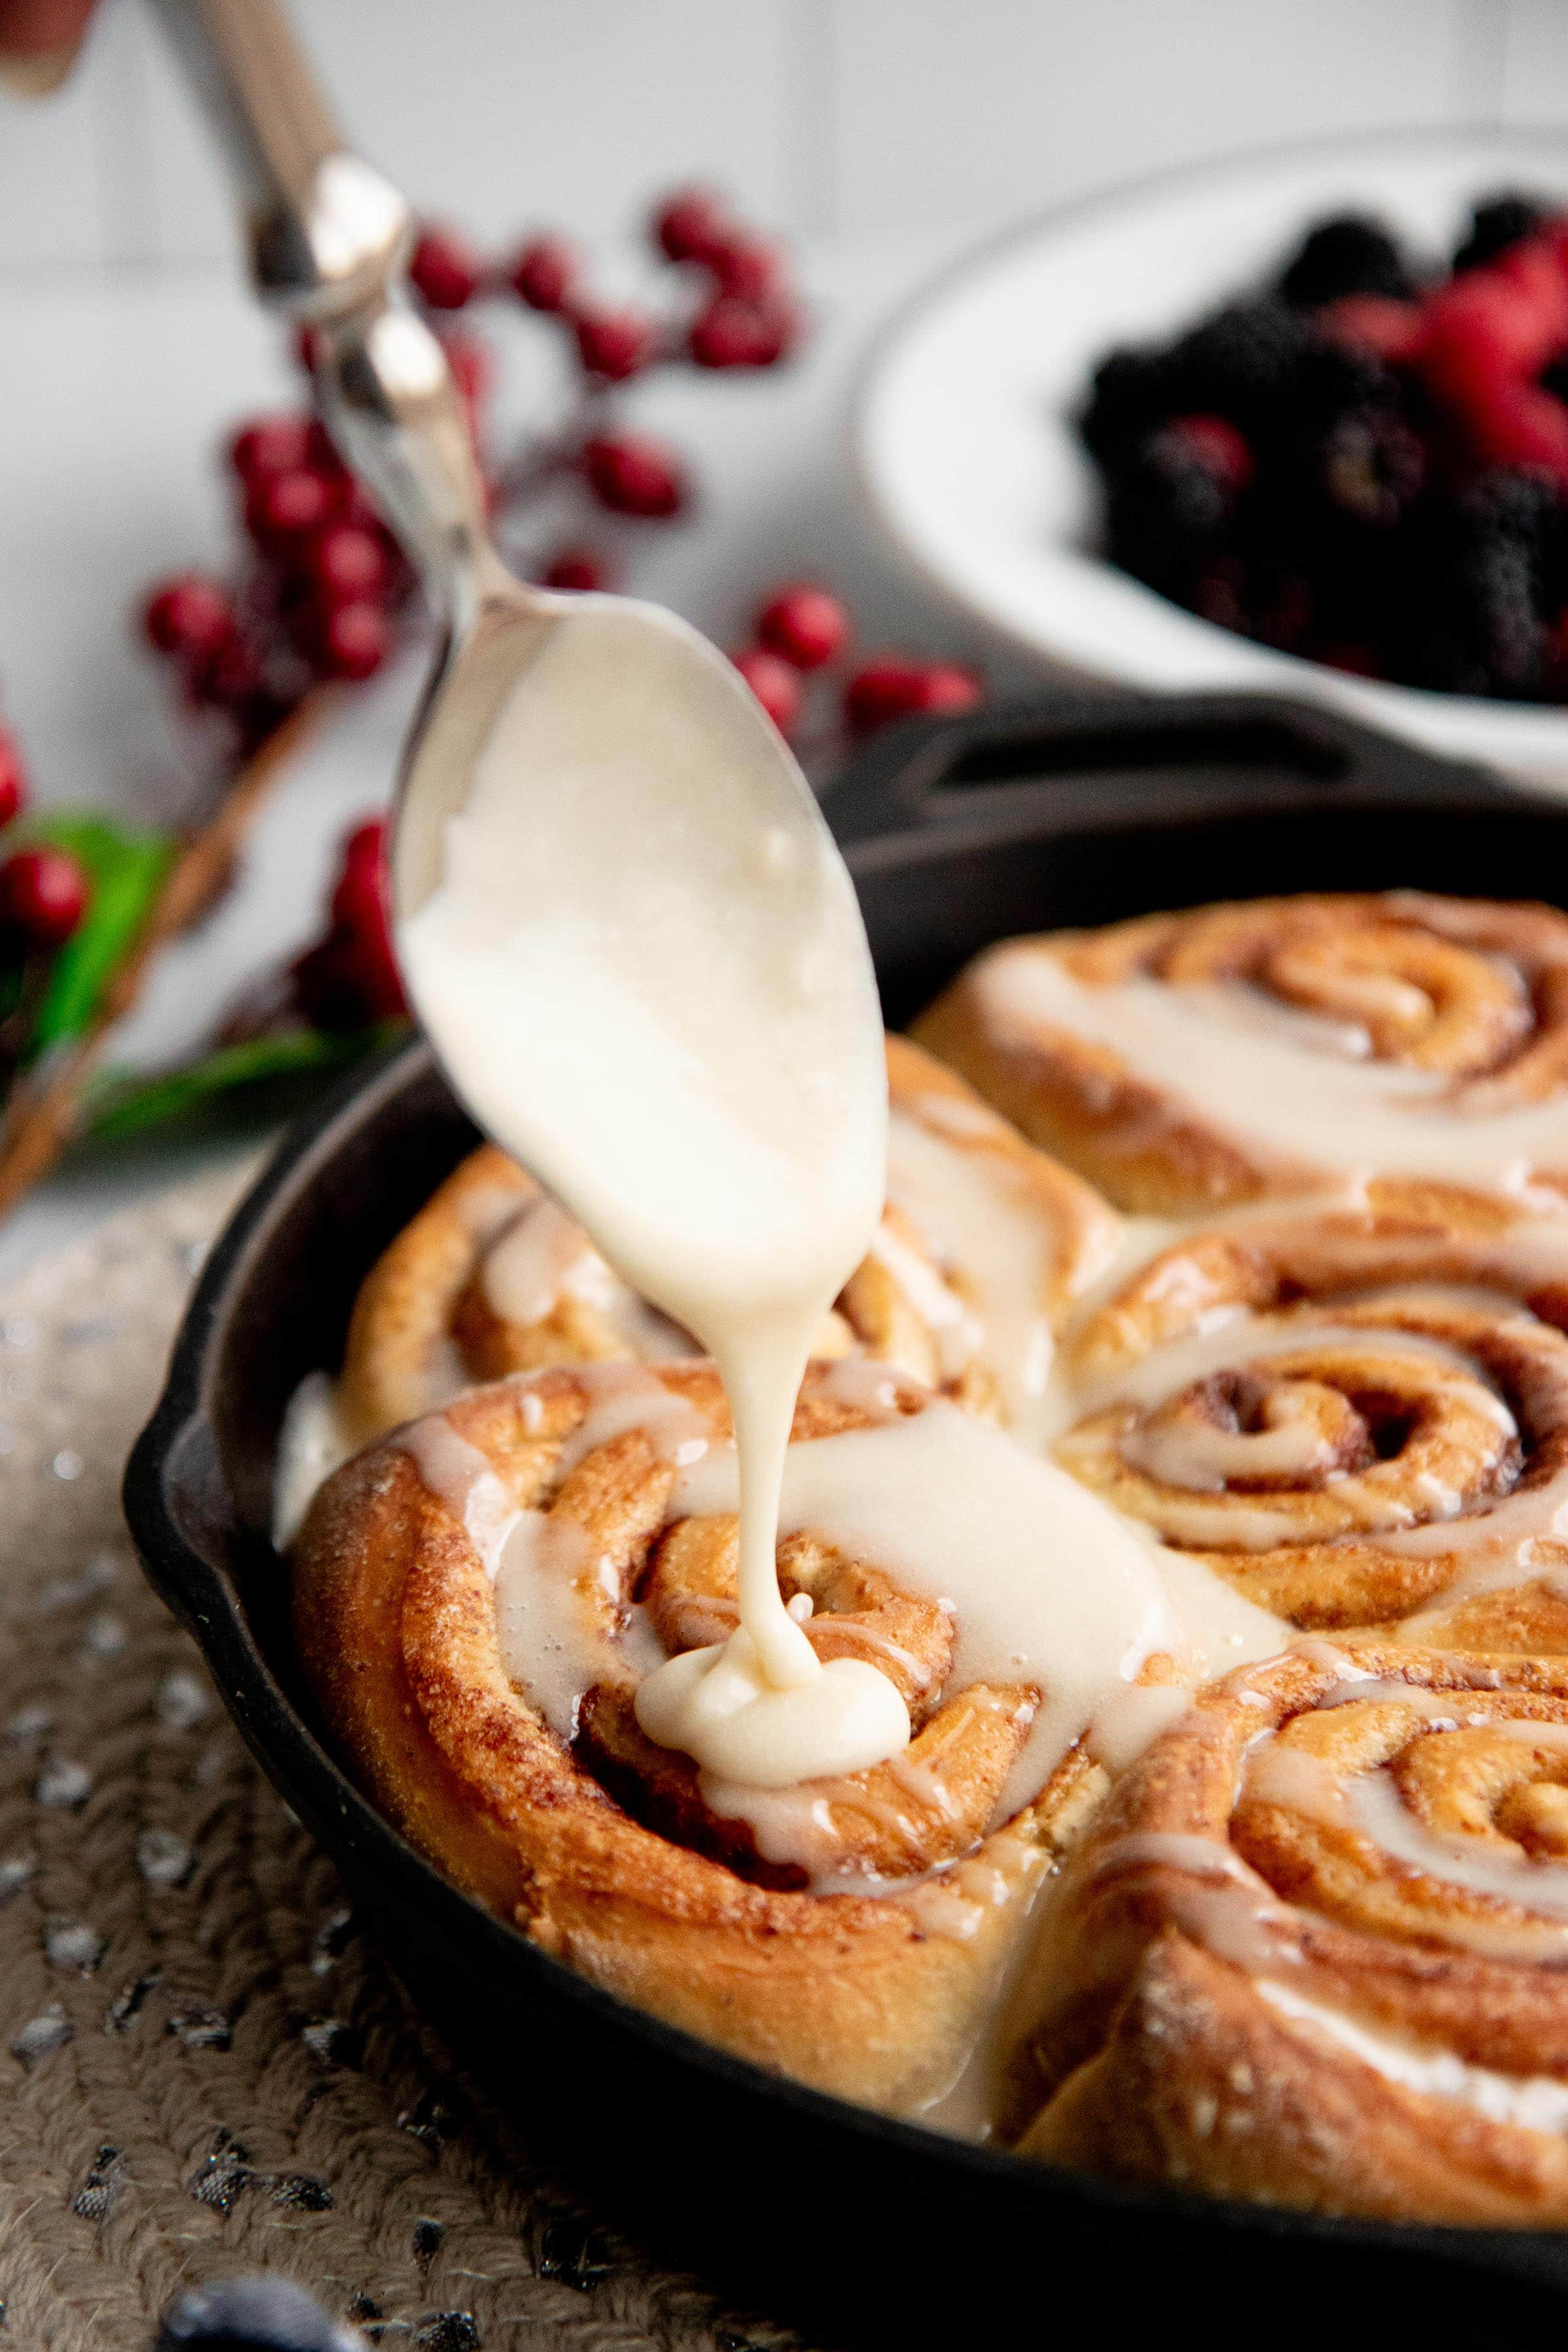 Spoon drizzling icing onto baked vegan cinnamon rolls in a cast iron skillet.